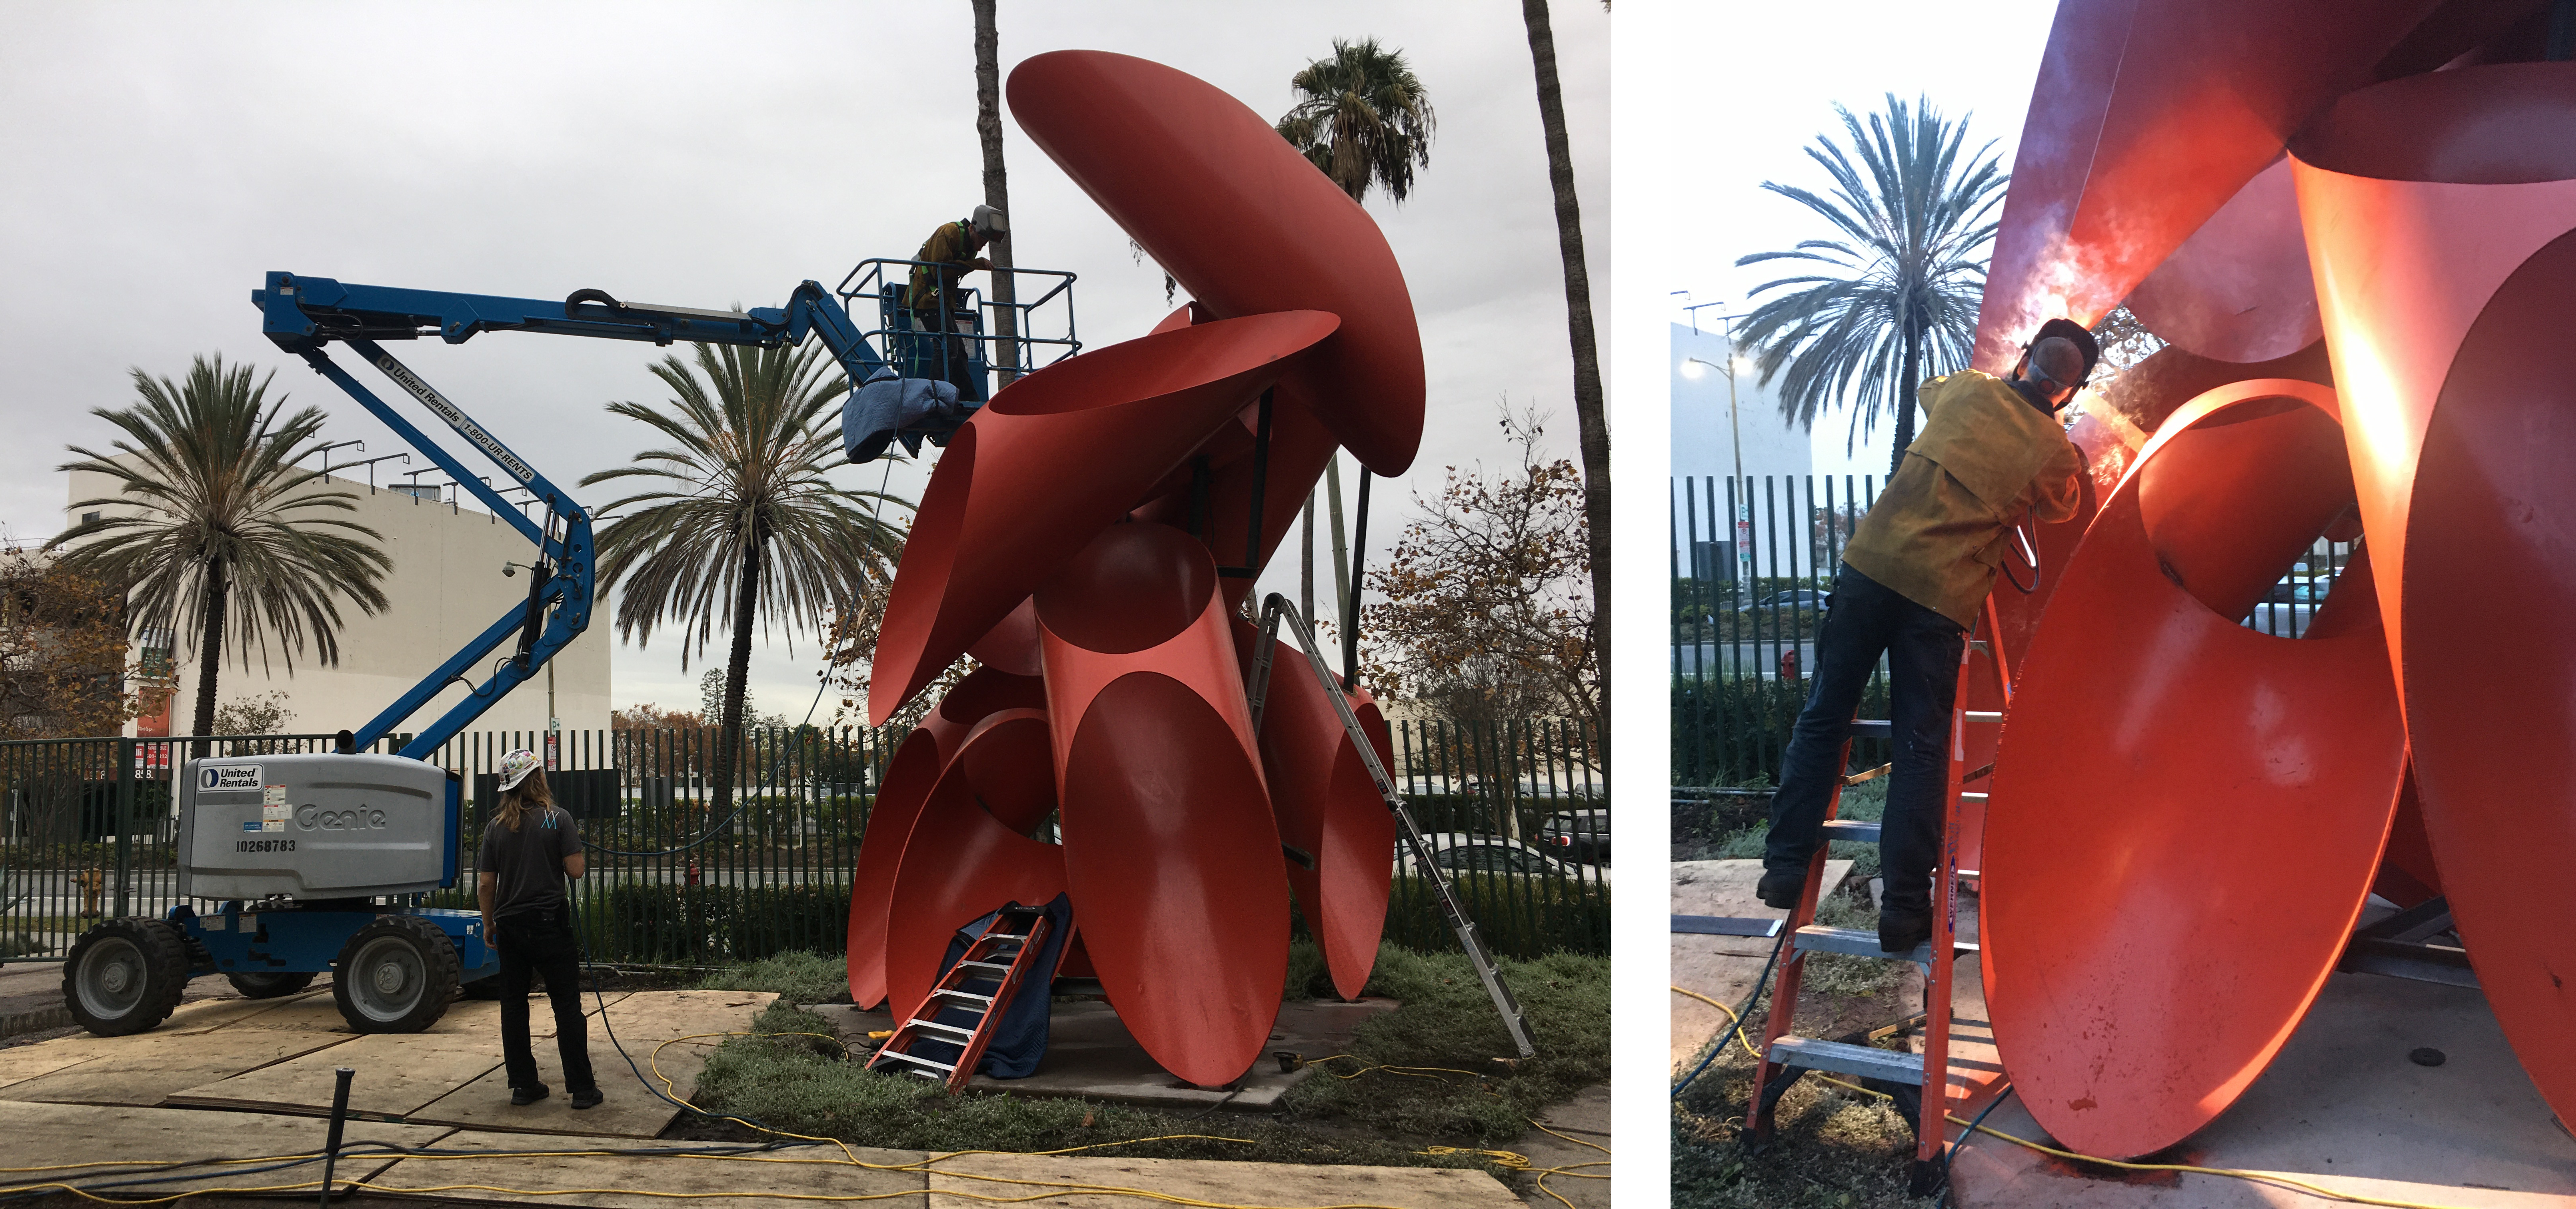 Both: Alexander Liberman, Phoenix, 1974, Los Angeles County Museum of Art, © The Alexander Liberman Trust, photos courtesy of Emory Marshall; Left: In the boom lift, Tyler Warren of Wolf Magritte assesses a weld to be reinforced; Right: Tyler welding an additional structural support